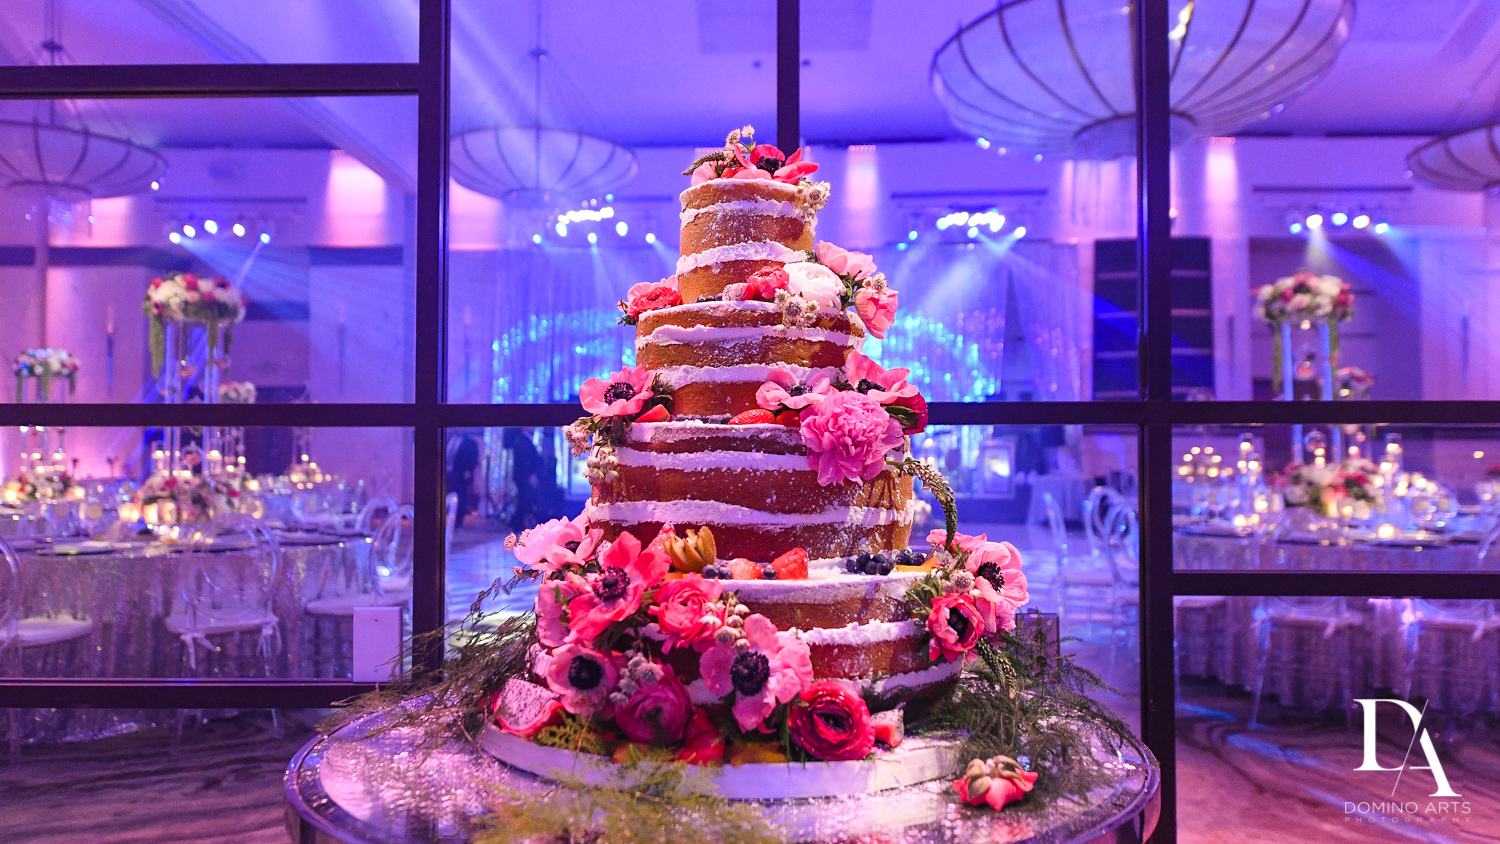 trending wedding cake at Fairy-Tale Wedding at BNai Torah Boca Raton by Domino Arts Photography